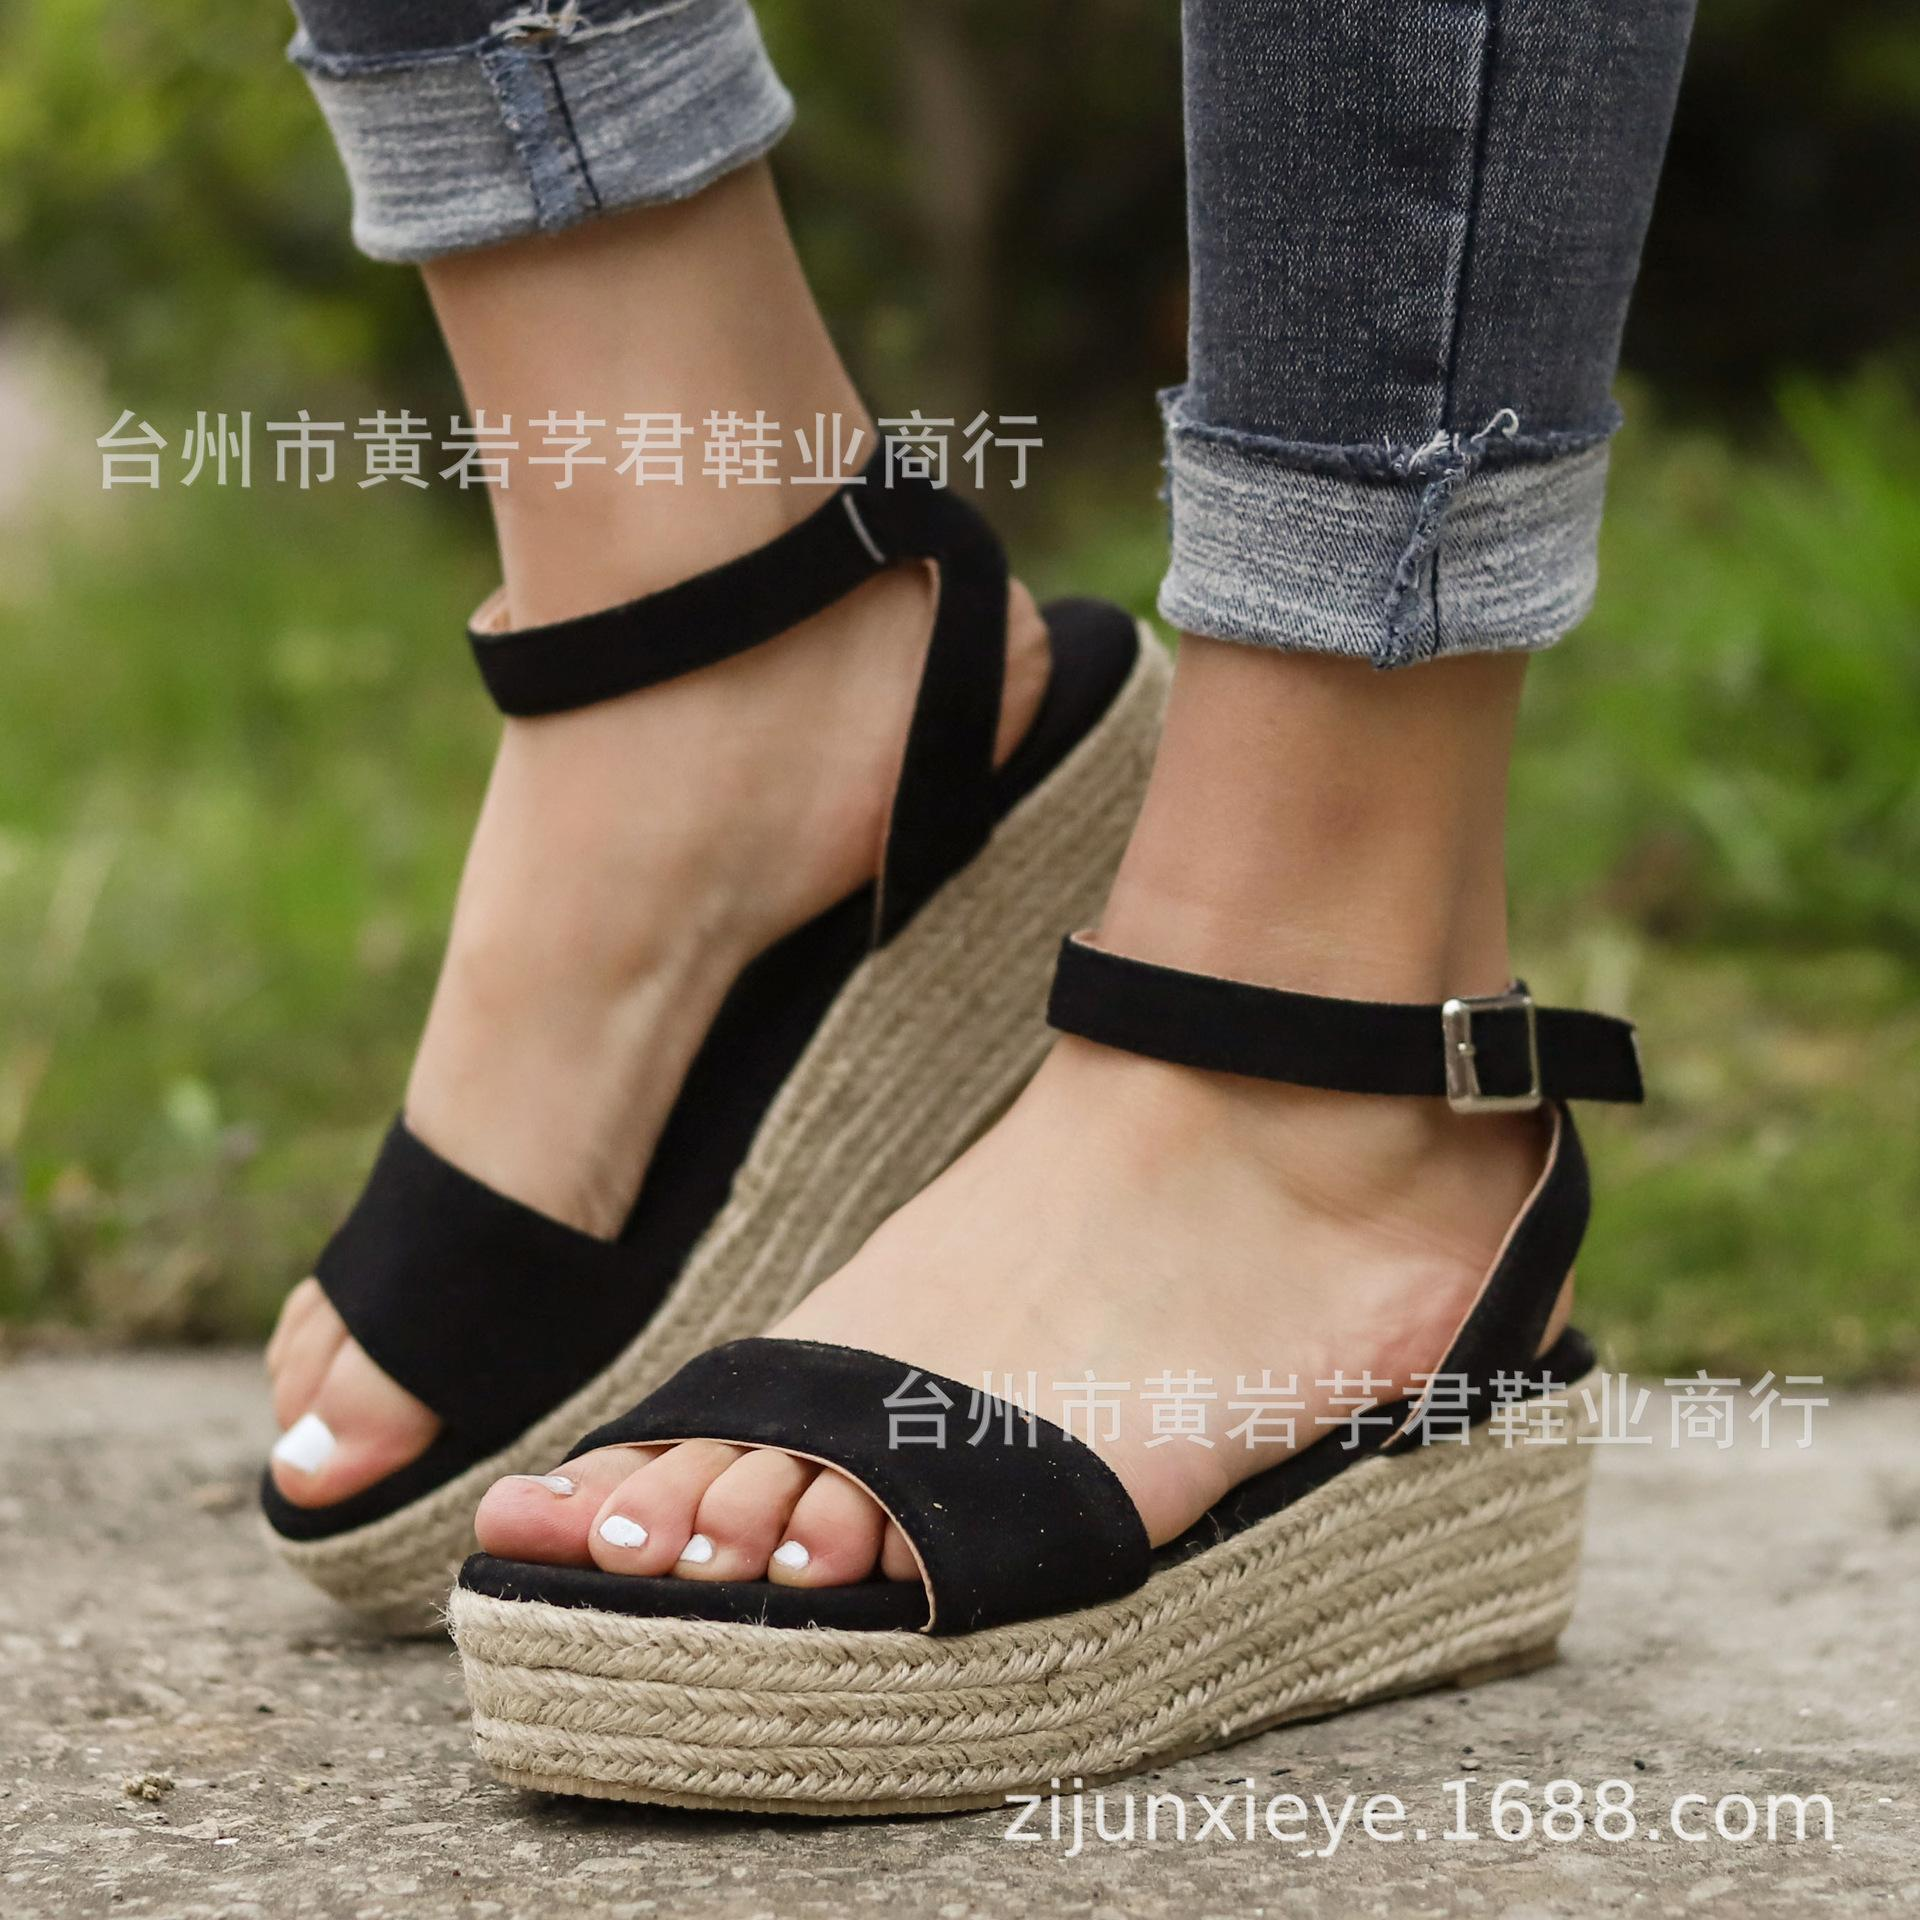 3860e362f3aae 2019 Wish Amazon Express Sales New Explosion Leopard Linen Slope and Light  sole Fishmouth Sandals for European and American Foreign Trade